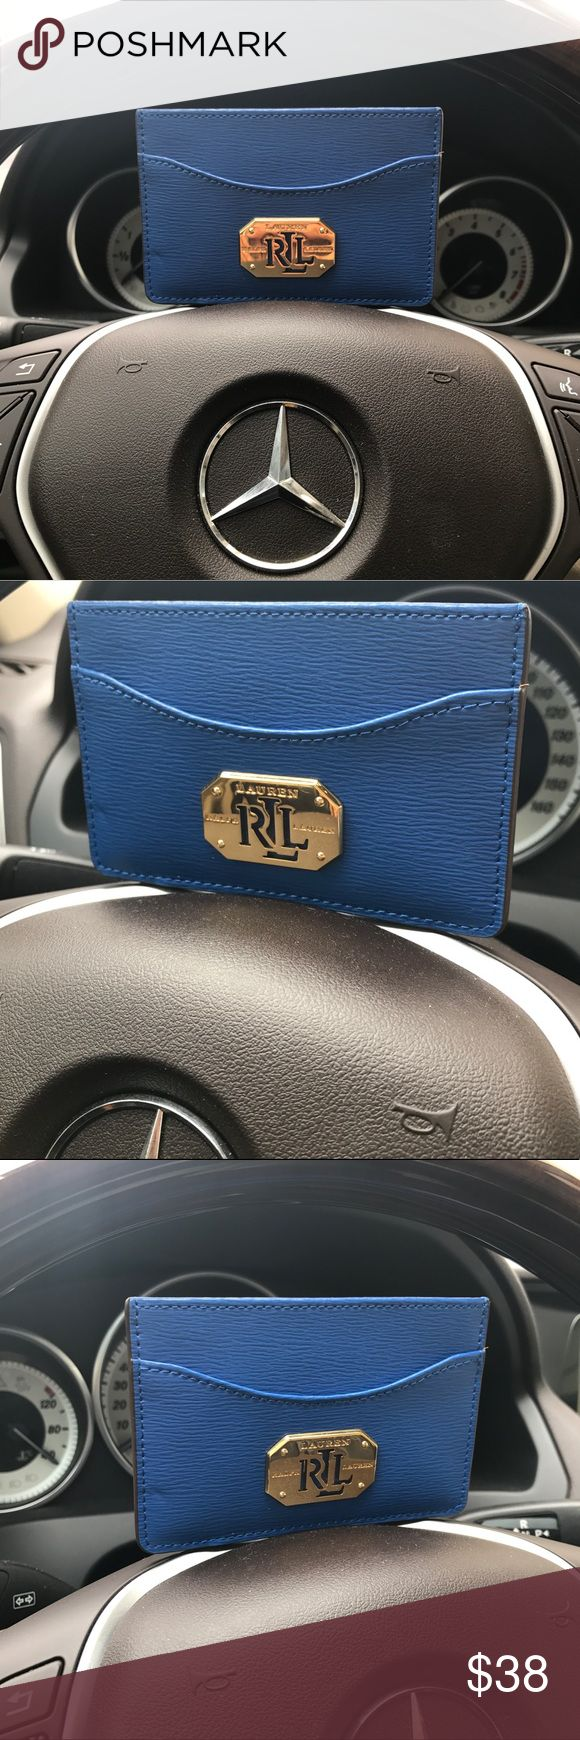 POLO RALPH LAUREN BUSINESS CREDIT CARD CASE WALLET 100% authentic and brand new. $38 original price. Macy's tag is attached. ♡Unlike other sellers who would raise the price and ask you to make an offer, I set the price below the original price for a fast and easy Buy It Now transaction. That's your biggest discount! If you want to save a bit more, simply check out my other listings for a bundled sale and save on combined shipping. Check out my other…